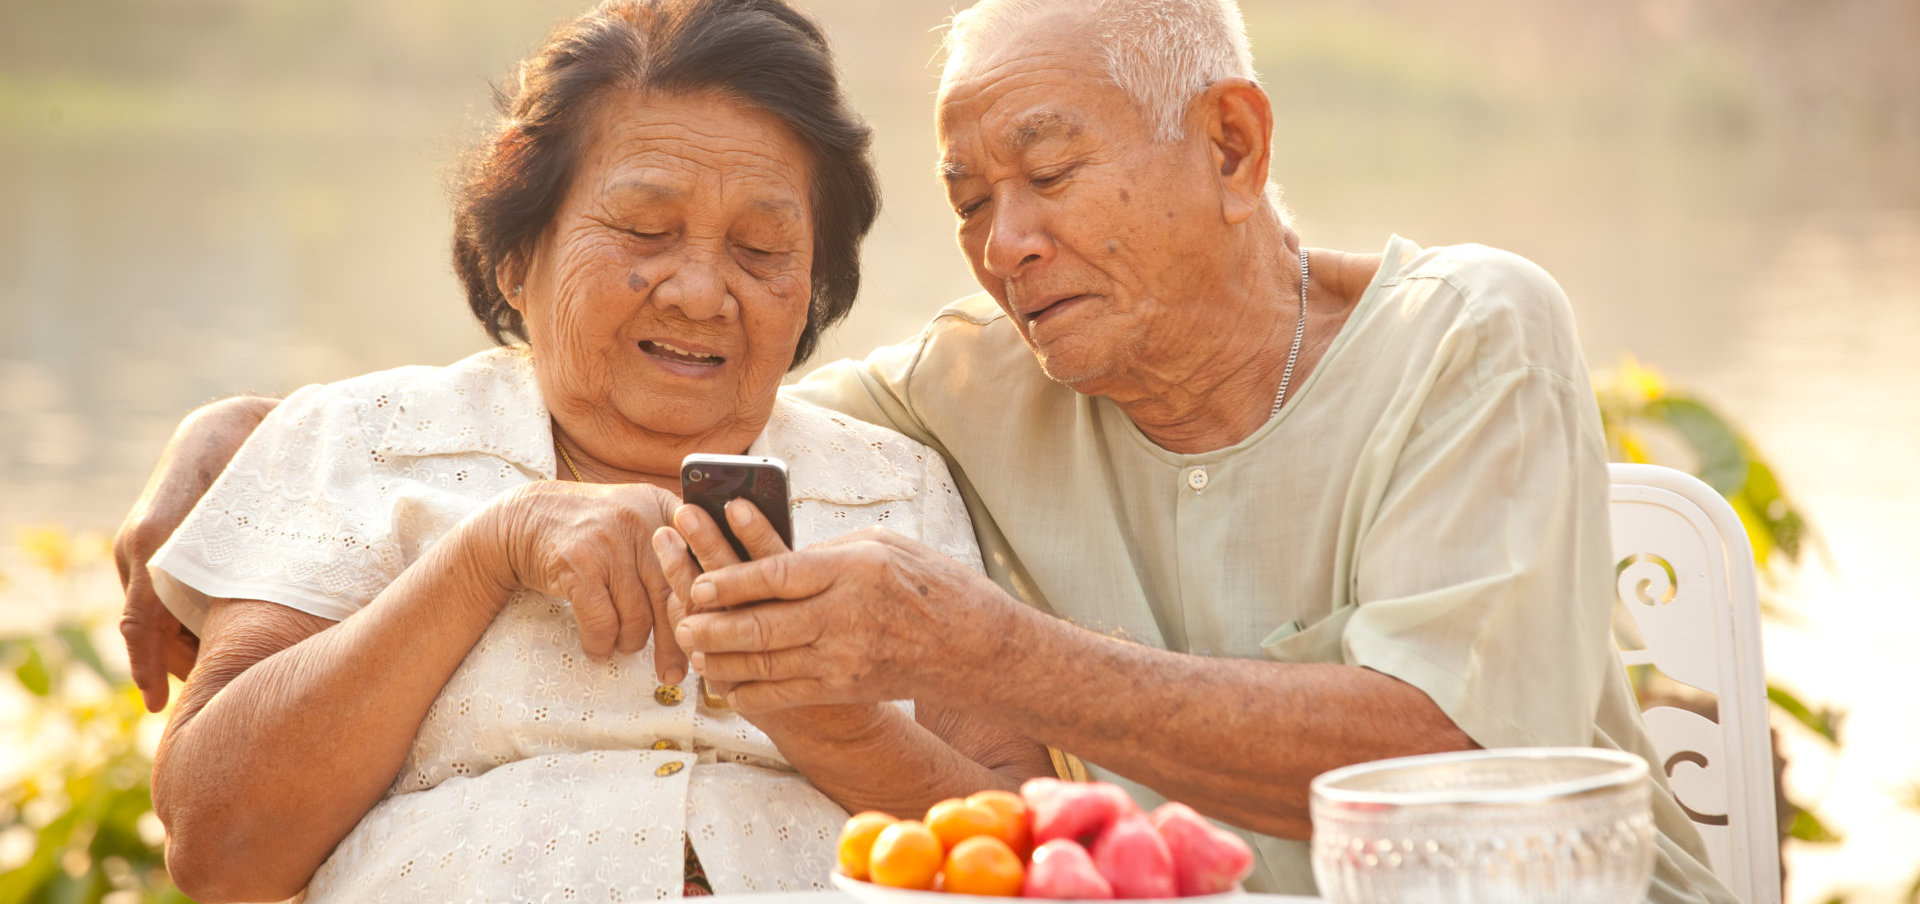 elder couple using mobile phone